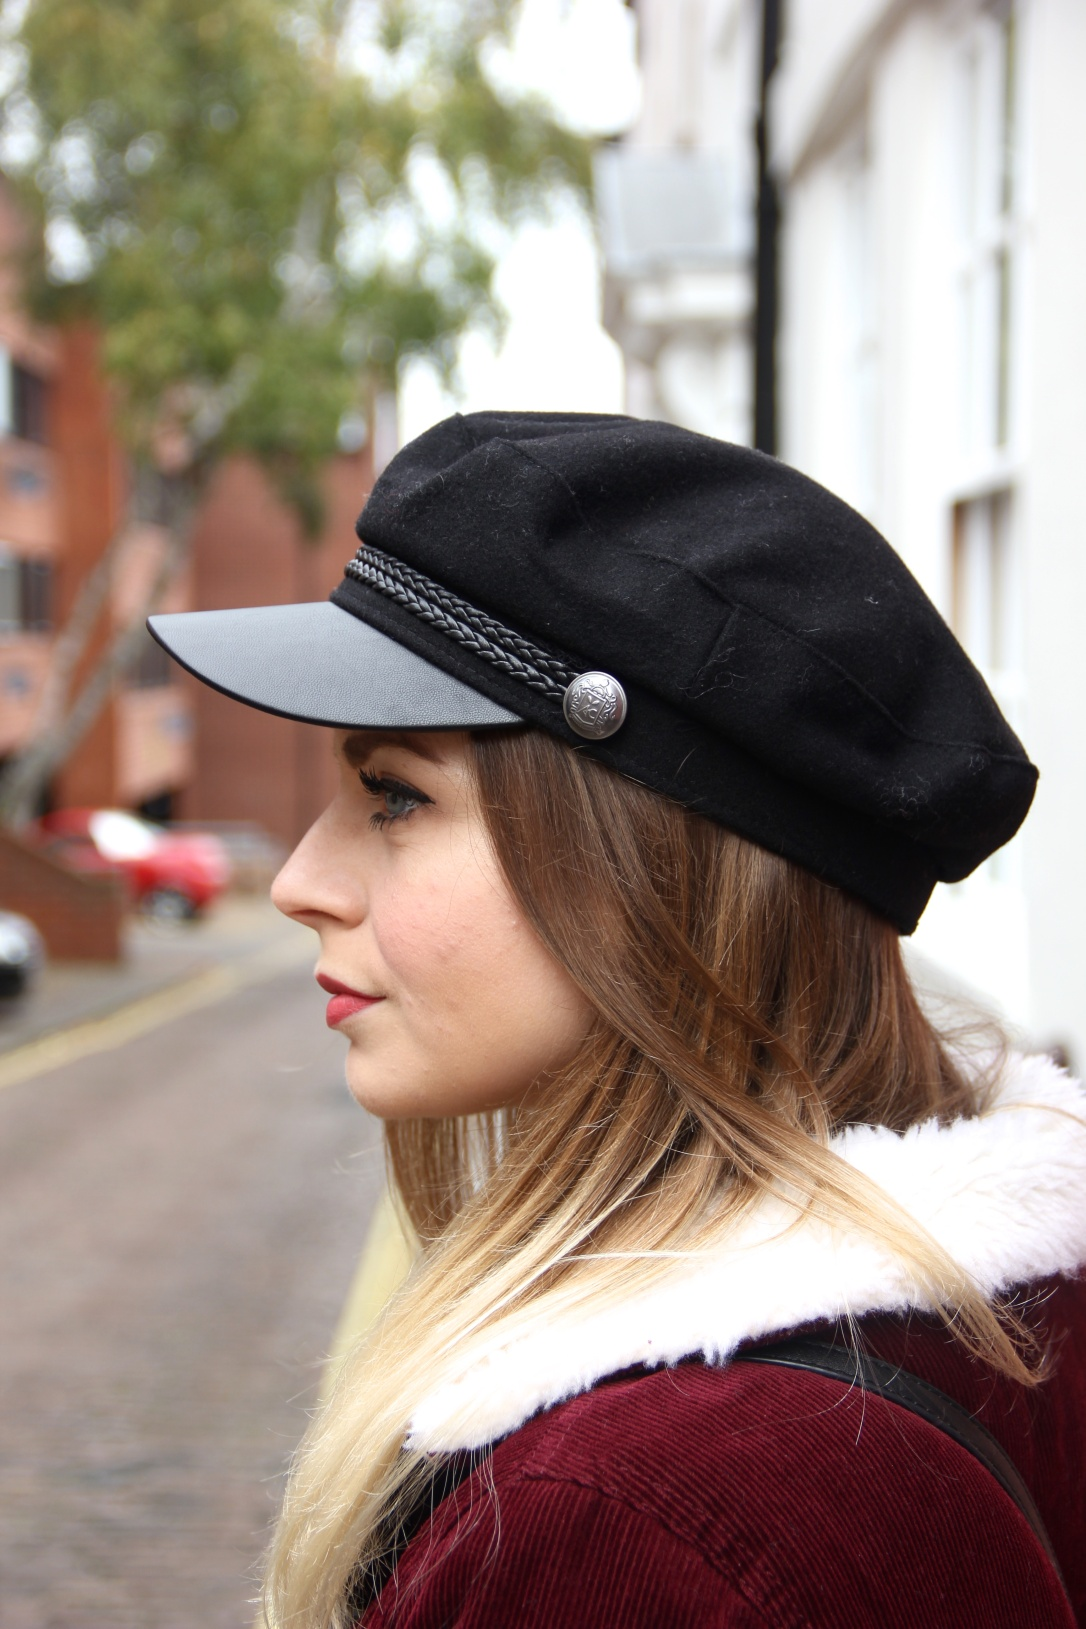 How to style a baker boy hat